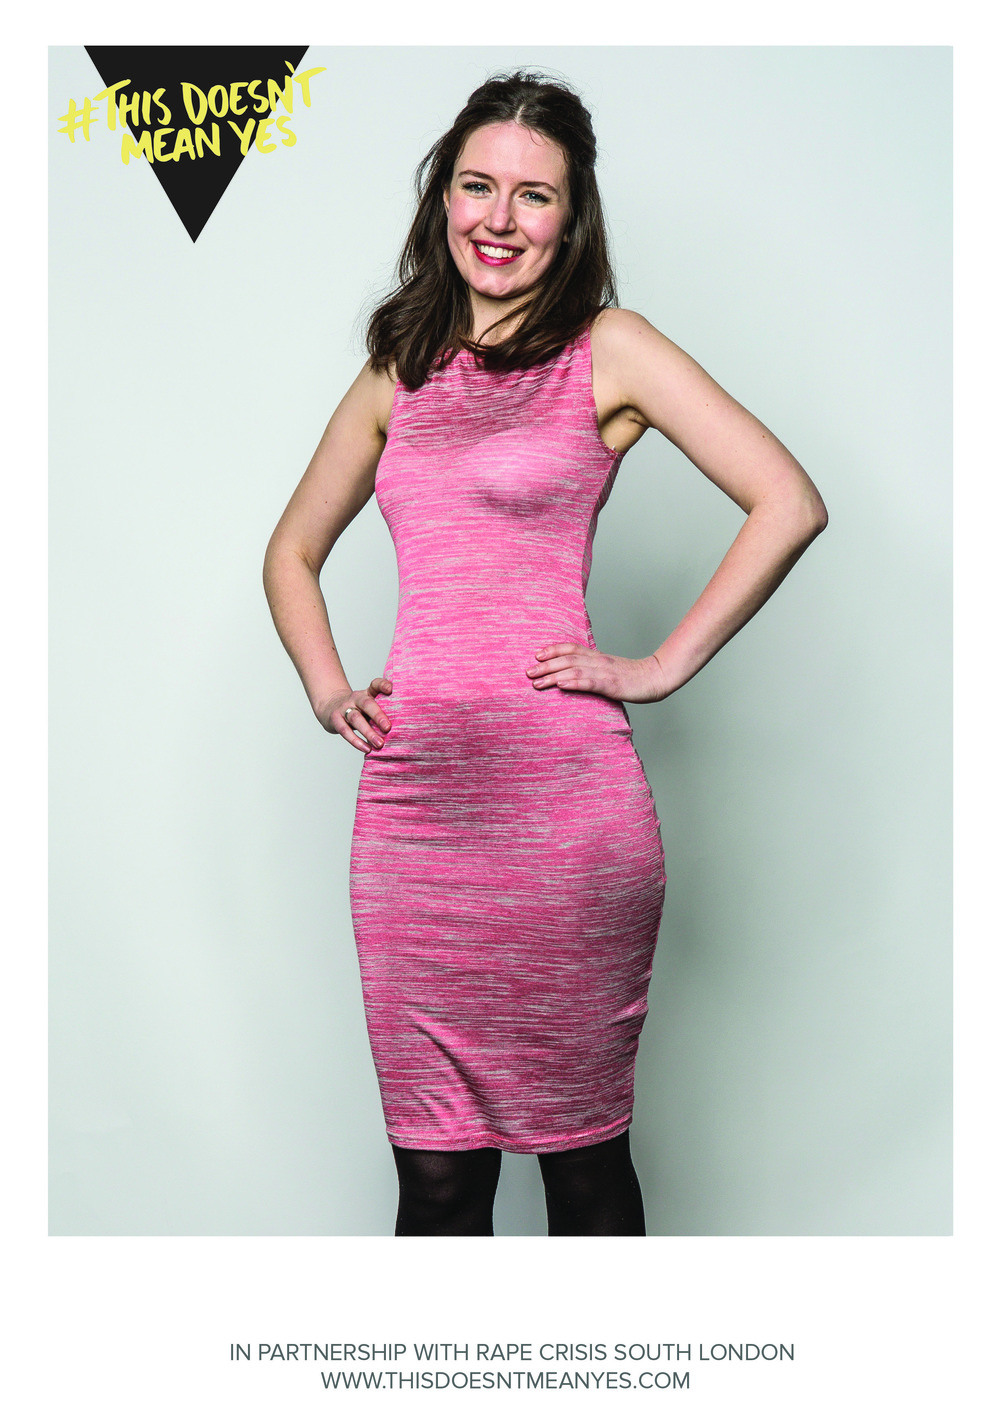 PINKDRESS_PORTRAIT.jpg